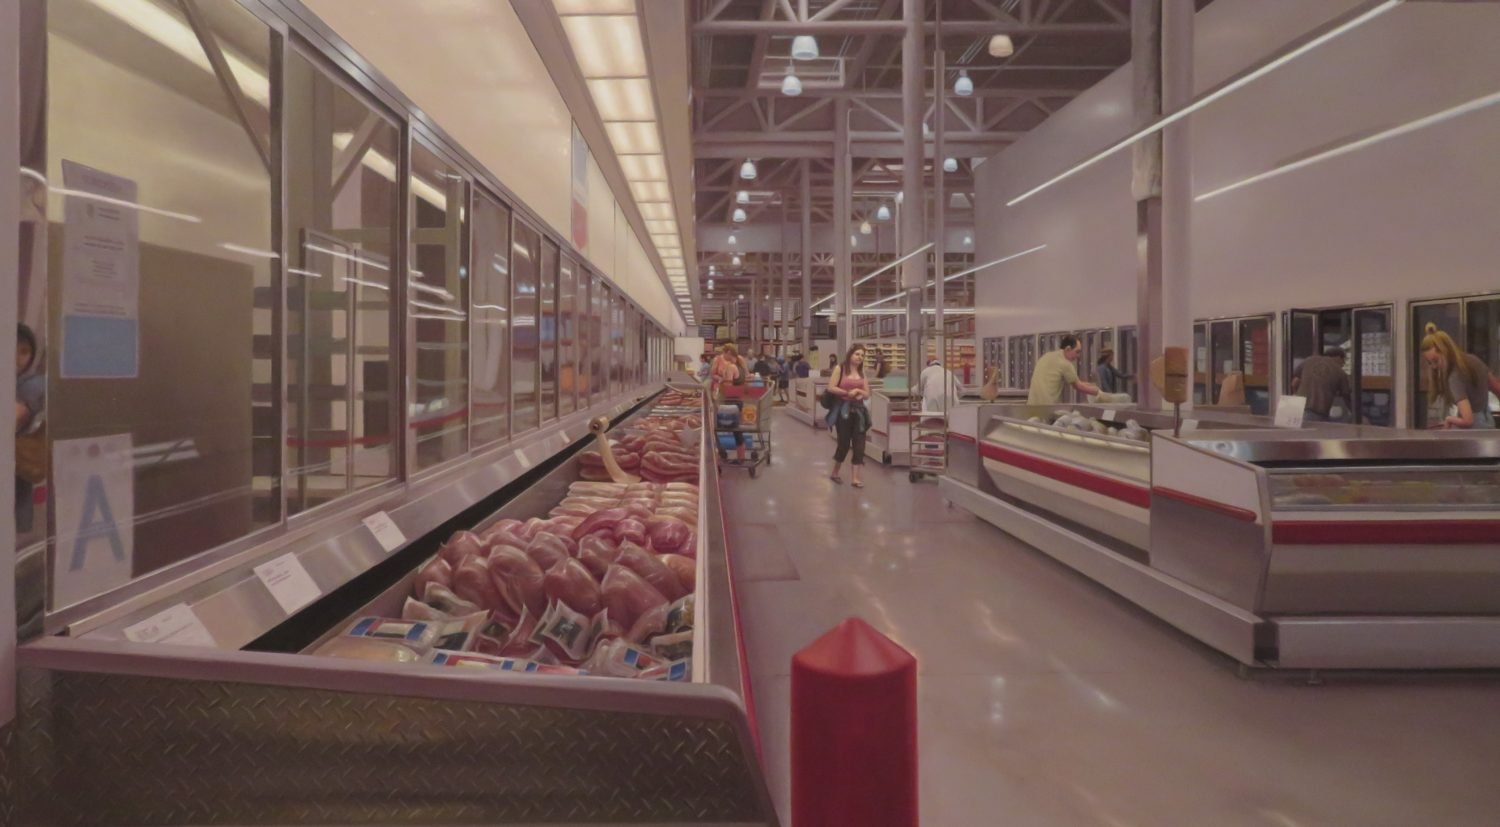 Painting of interior of a grocery store by Marc Trujillo